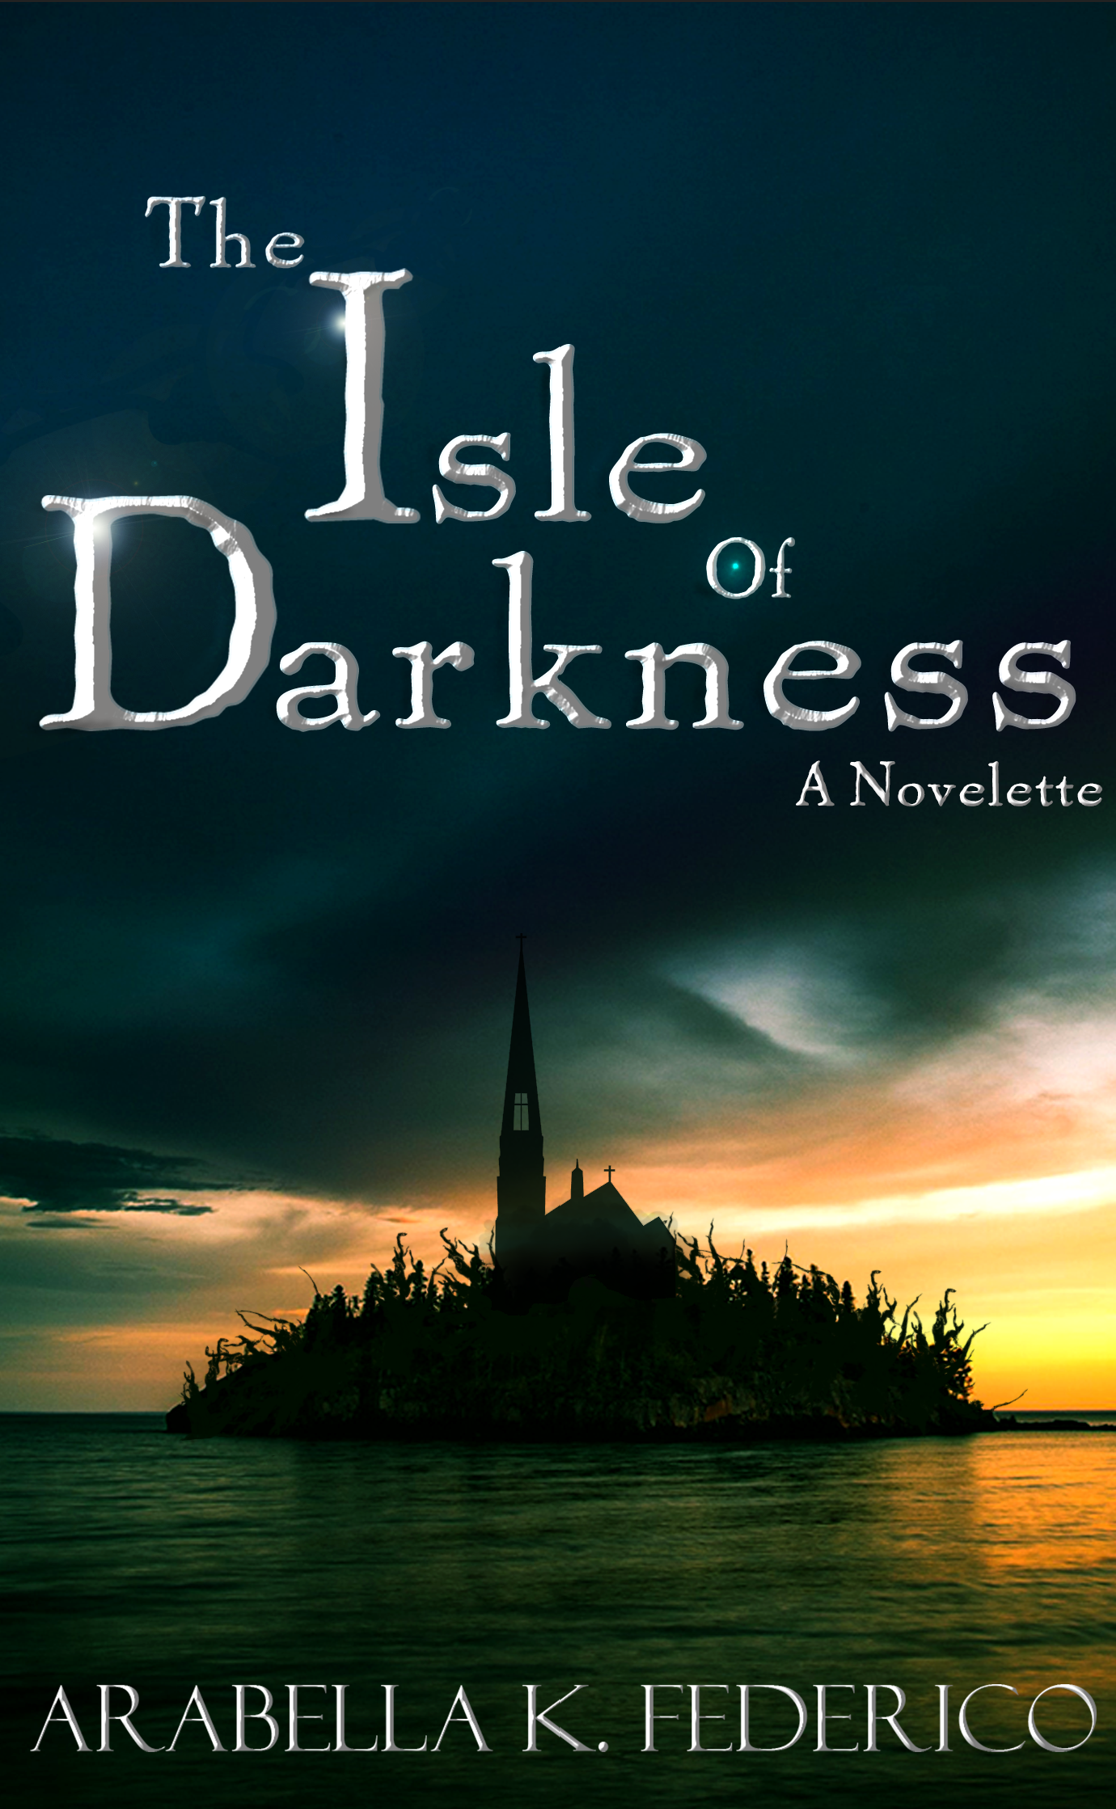 The Isle of Darkness by Arabella K. Federico